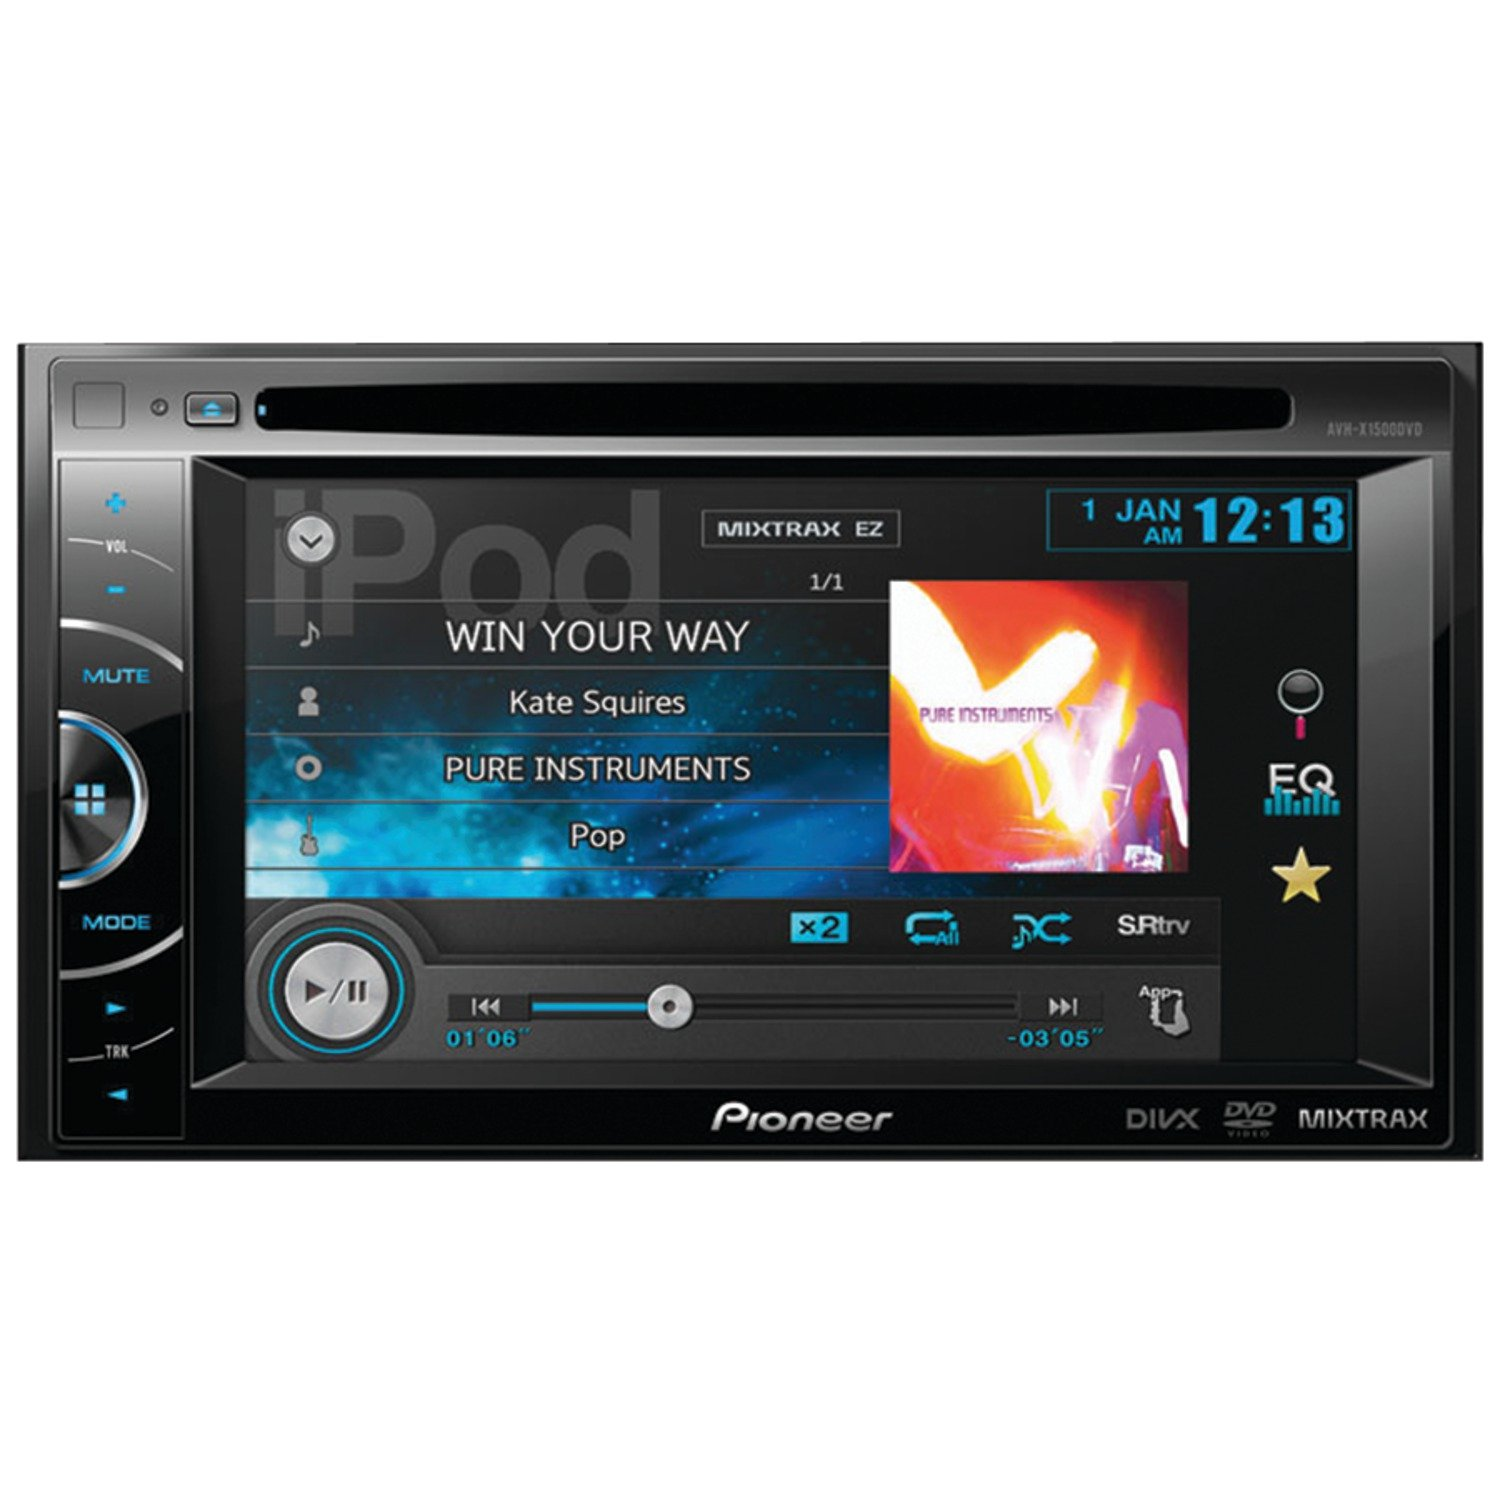 pioneer car stereo models vumandas kendes. Black Bedroom Furniture Sets. Home Design Ideas